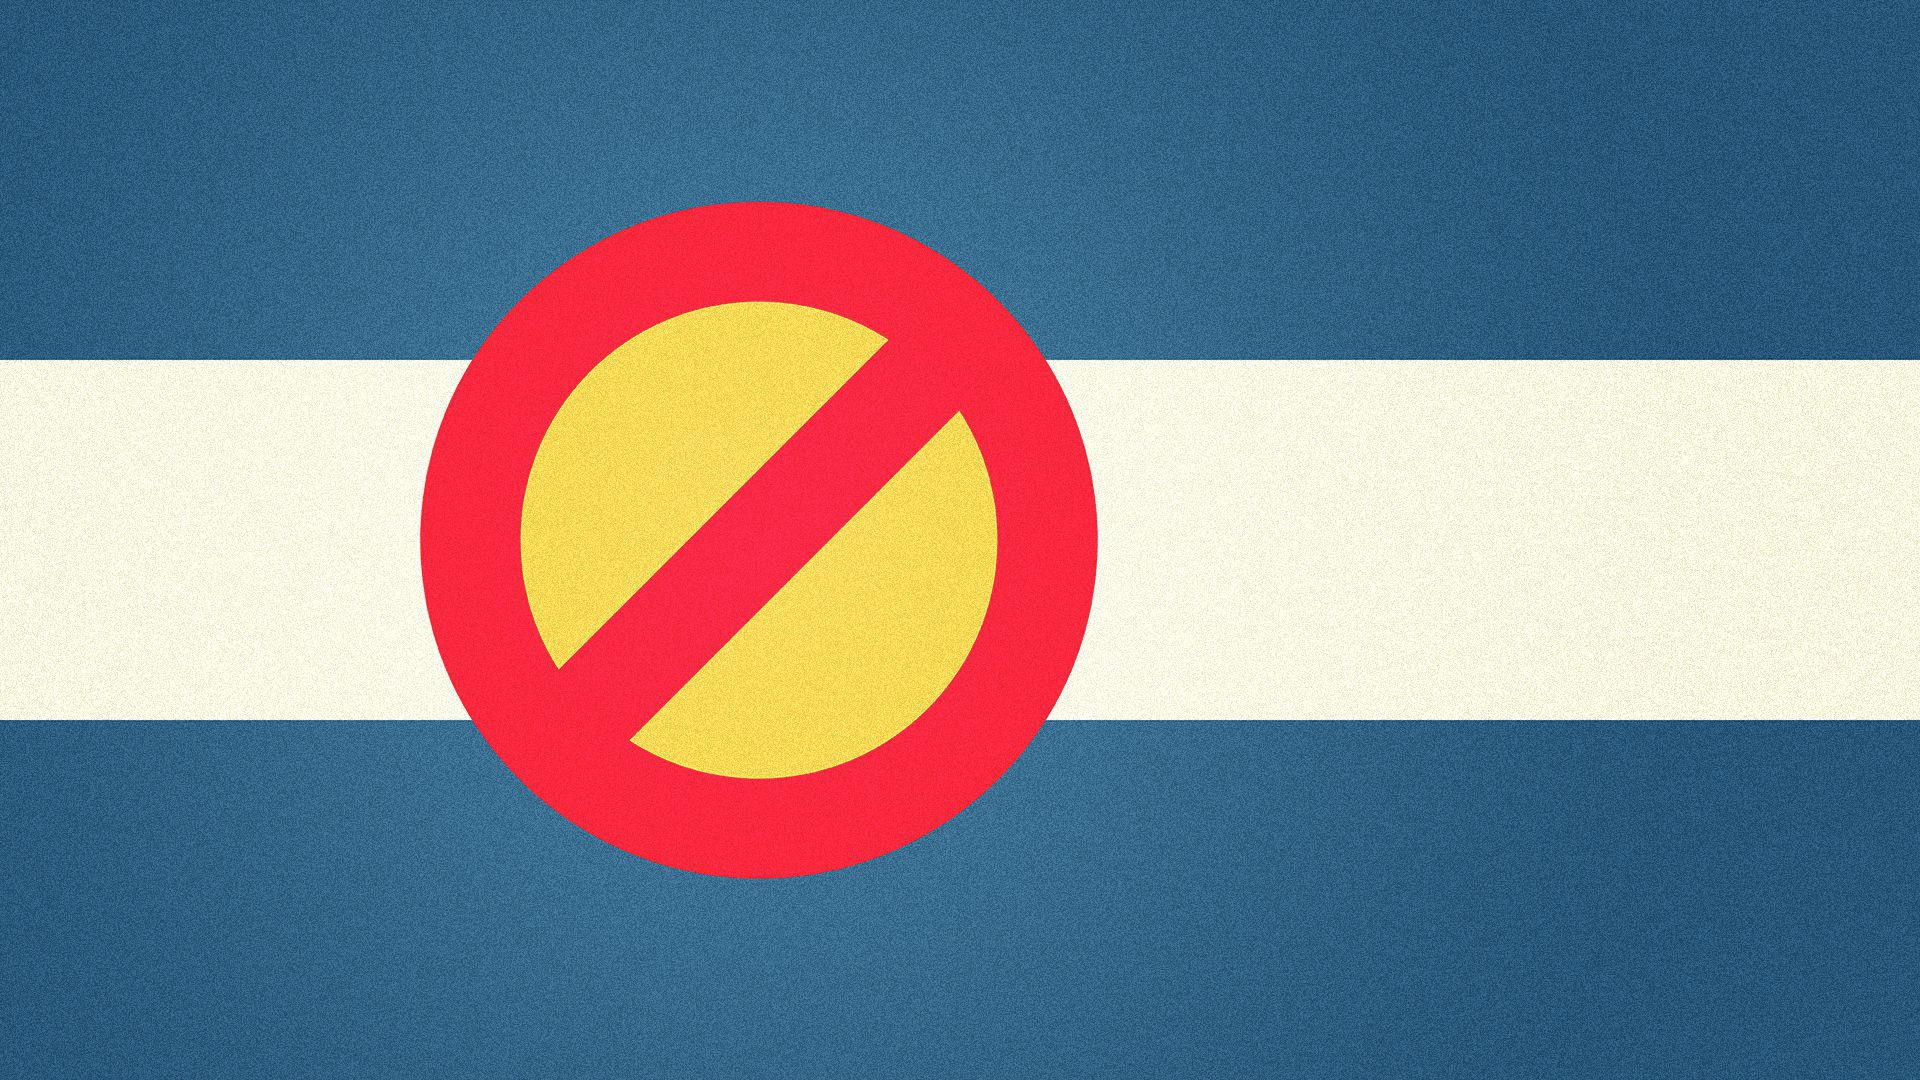 Illustration of the Colorado flag, with a no symbol instead of a c.